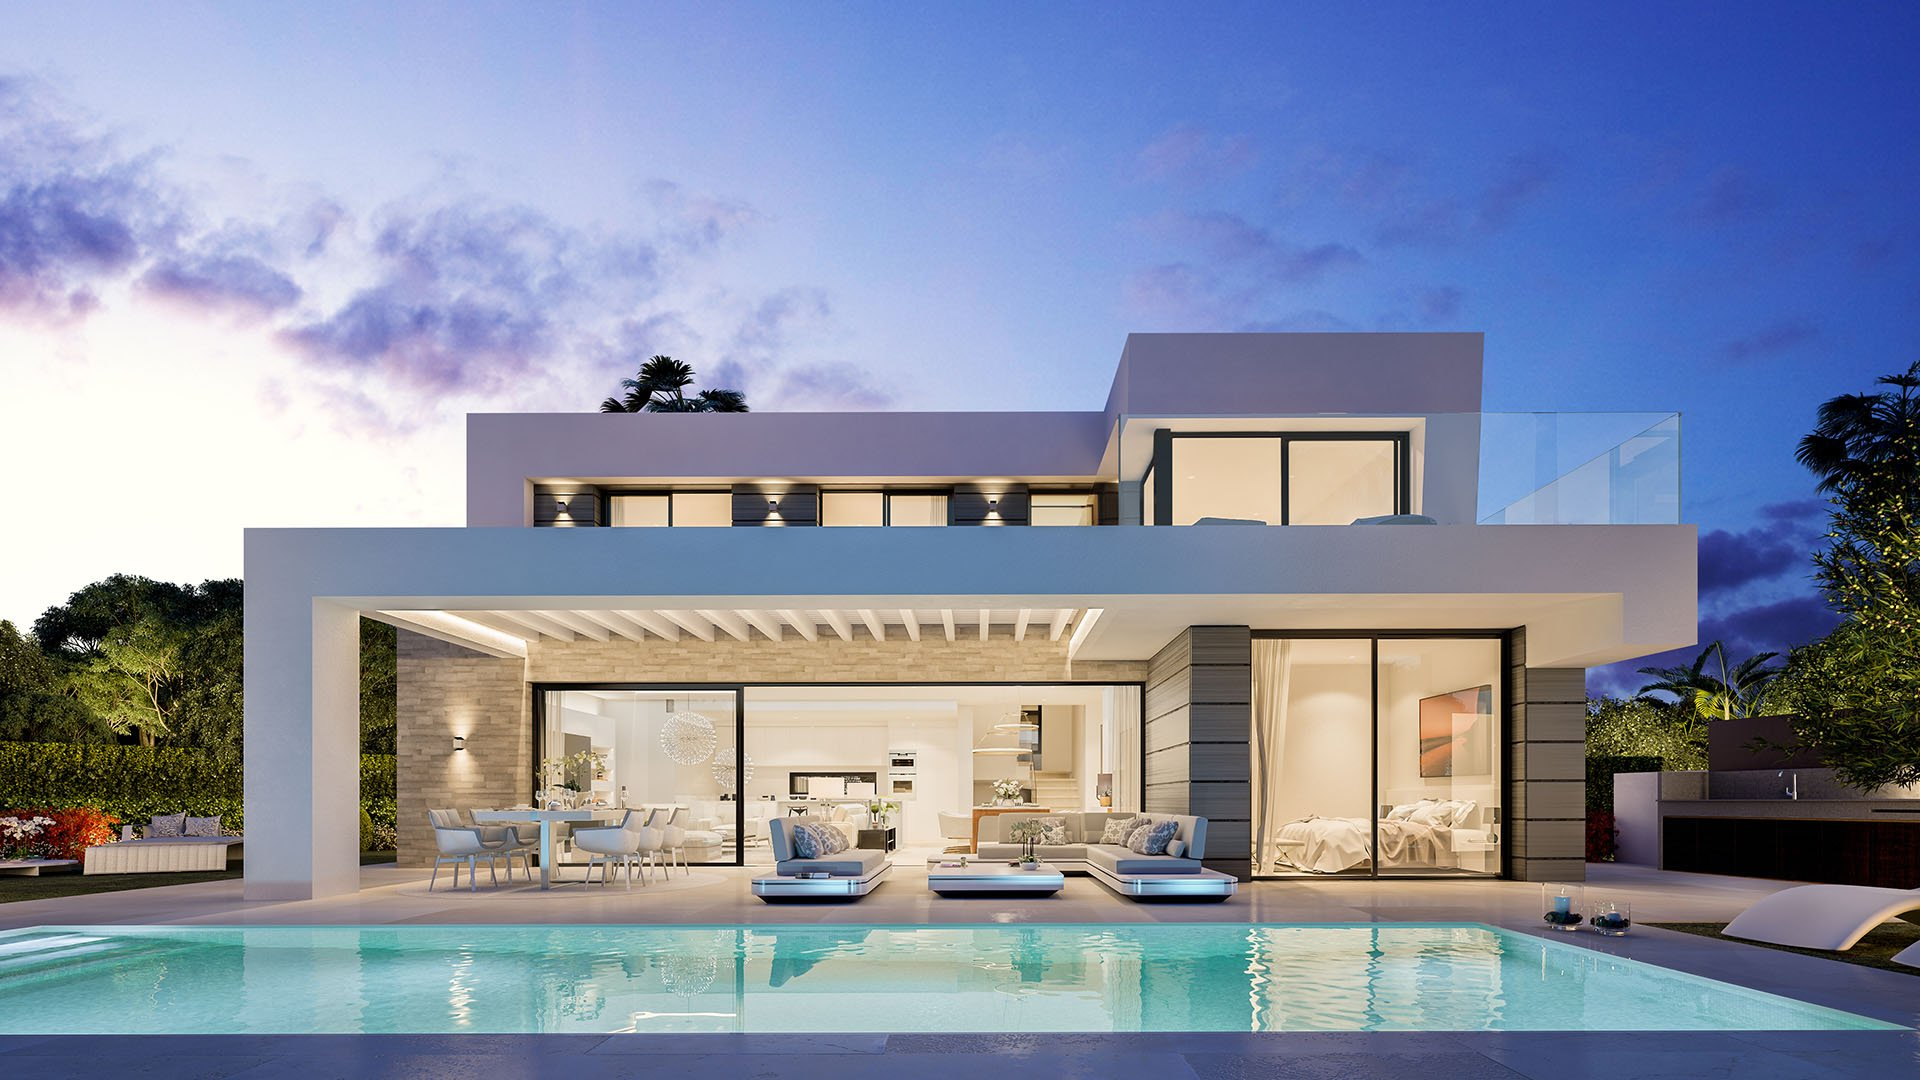 CaboRoyale: Premium residences with a sea view within walking distance from the beach